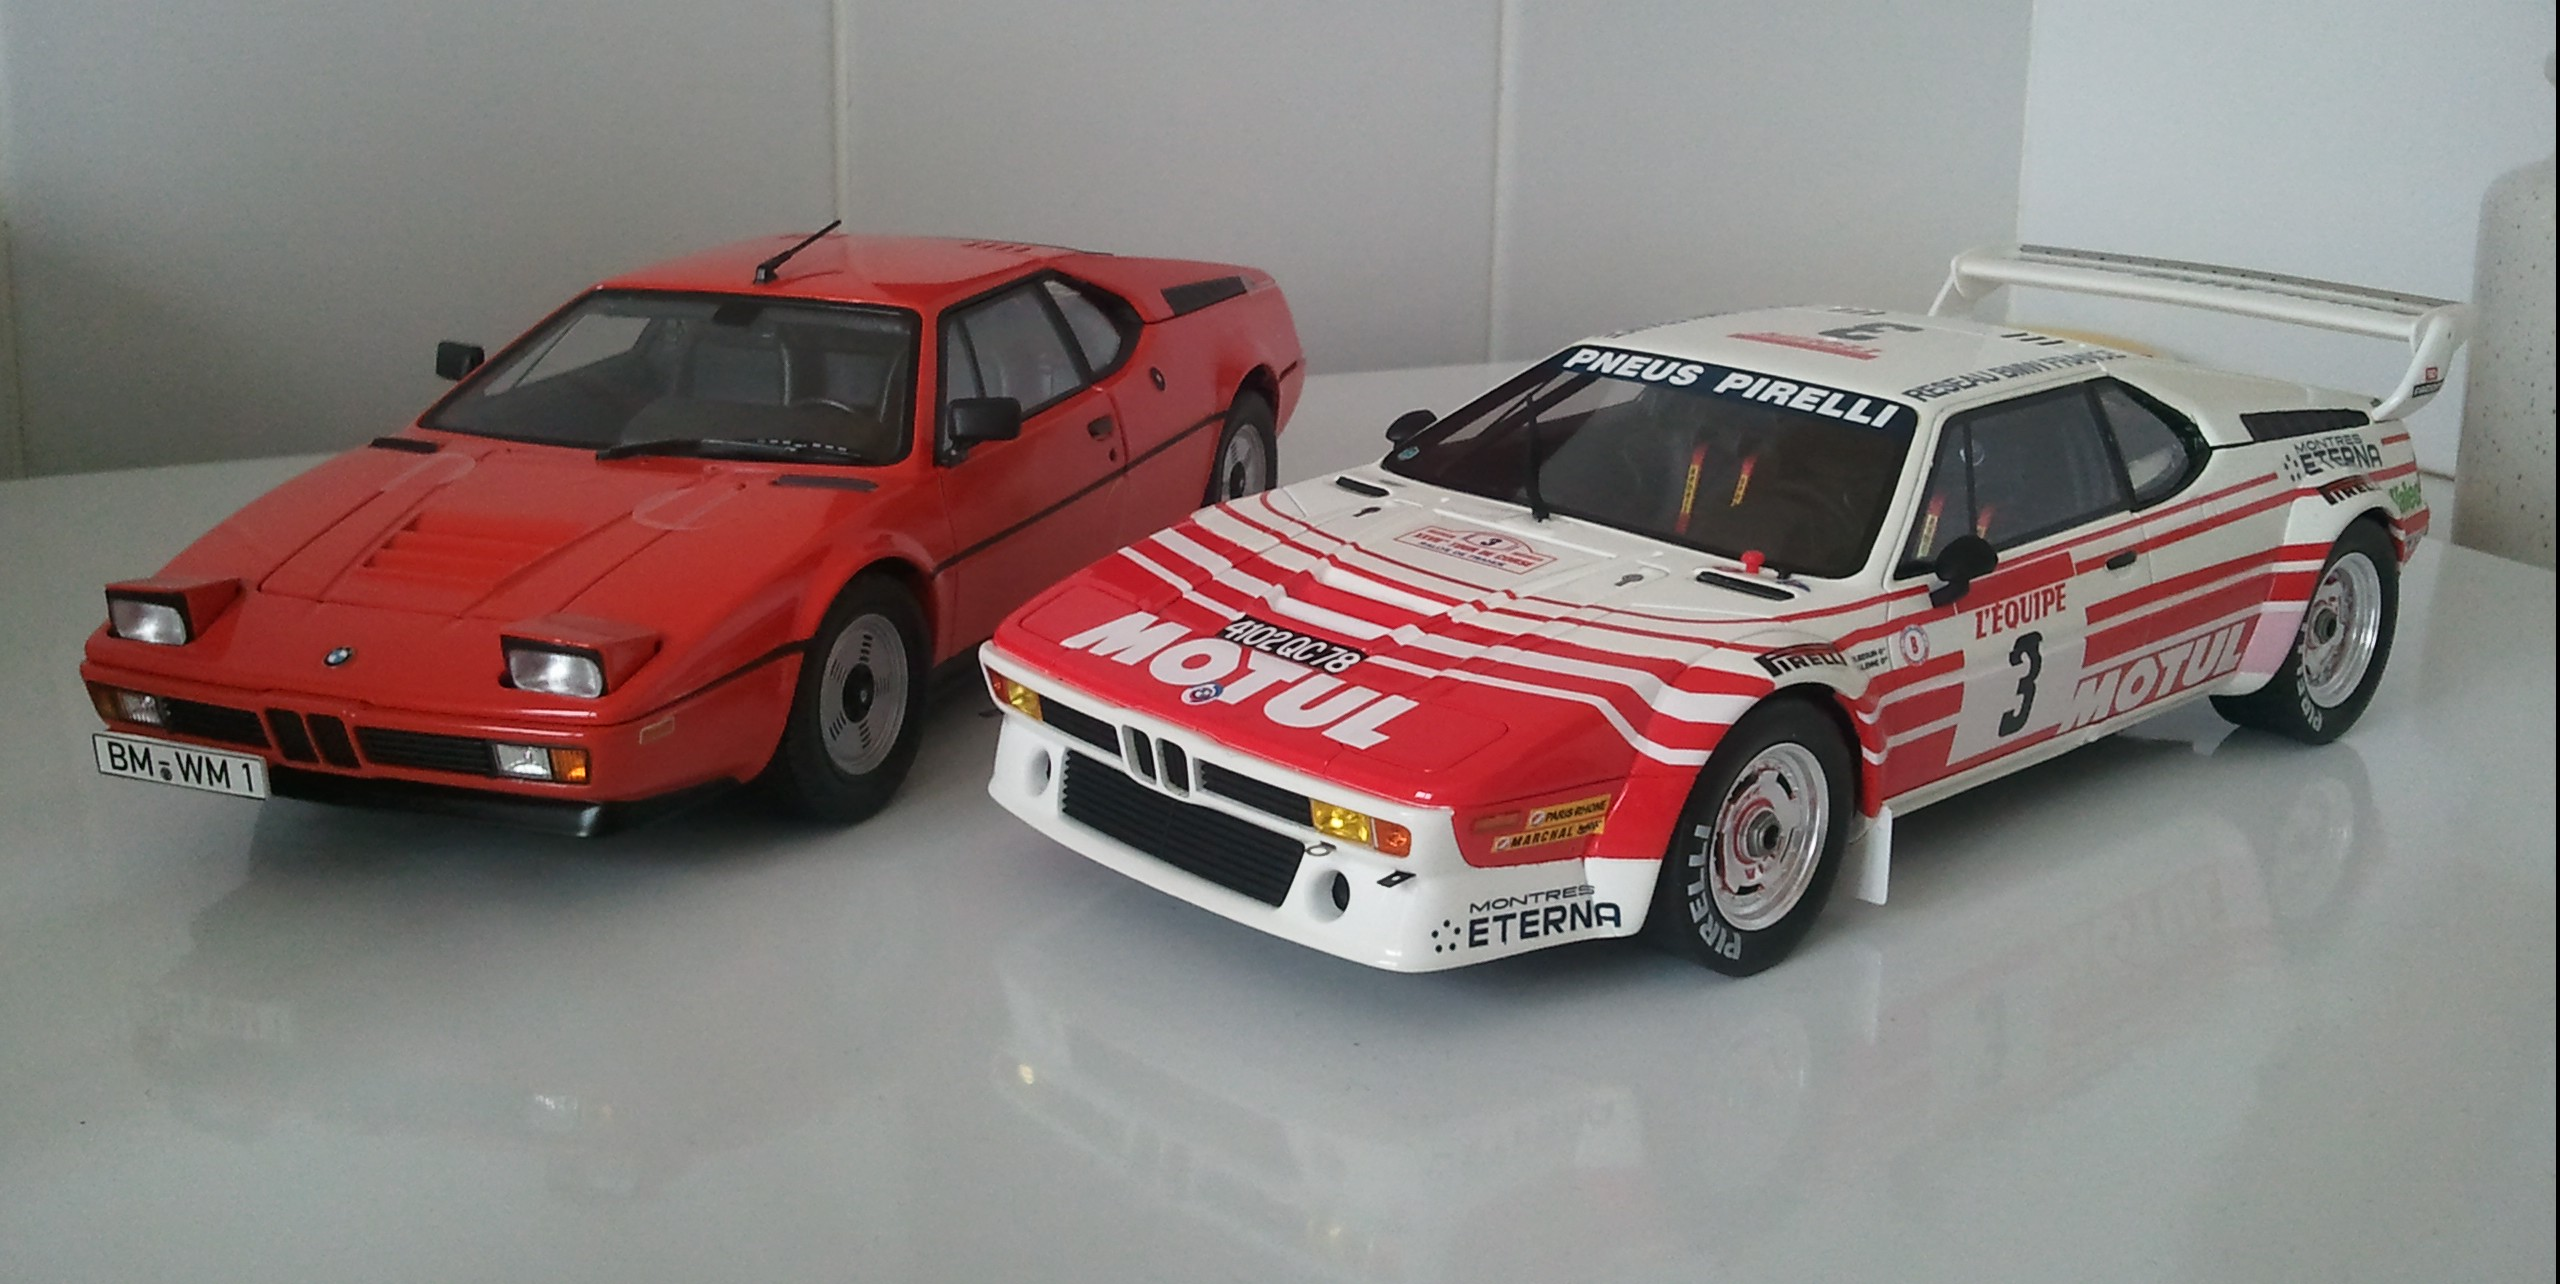 duo bmw m1